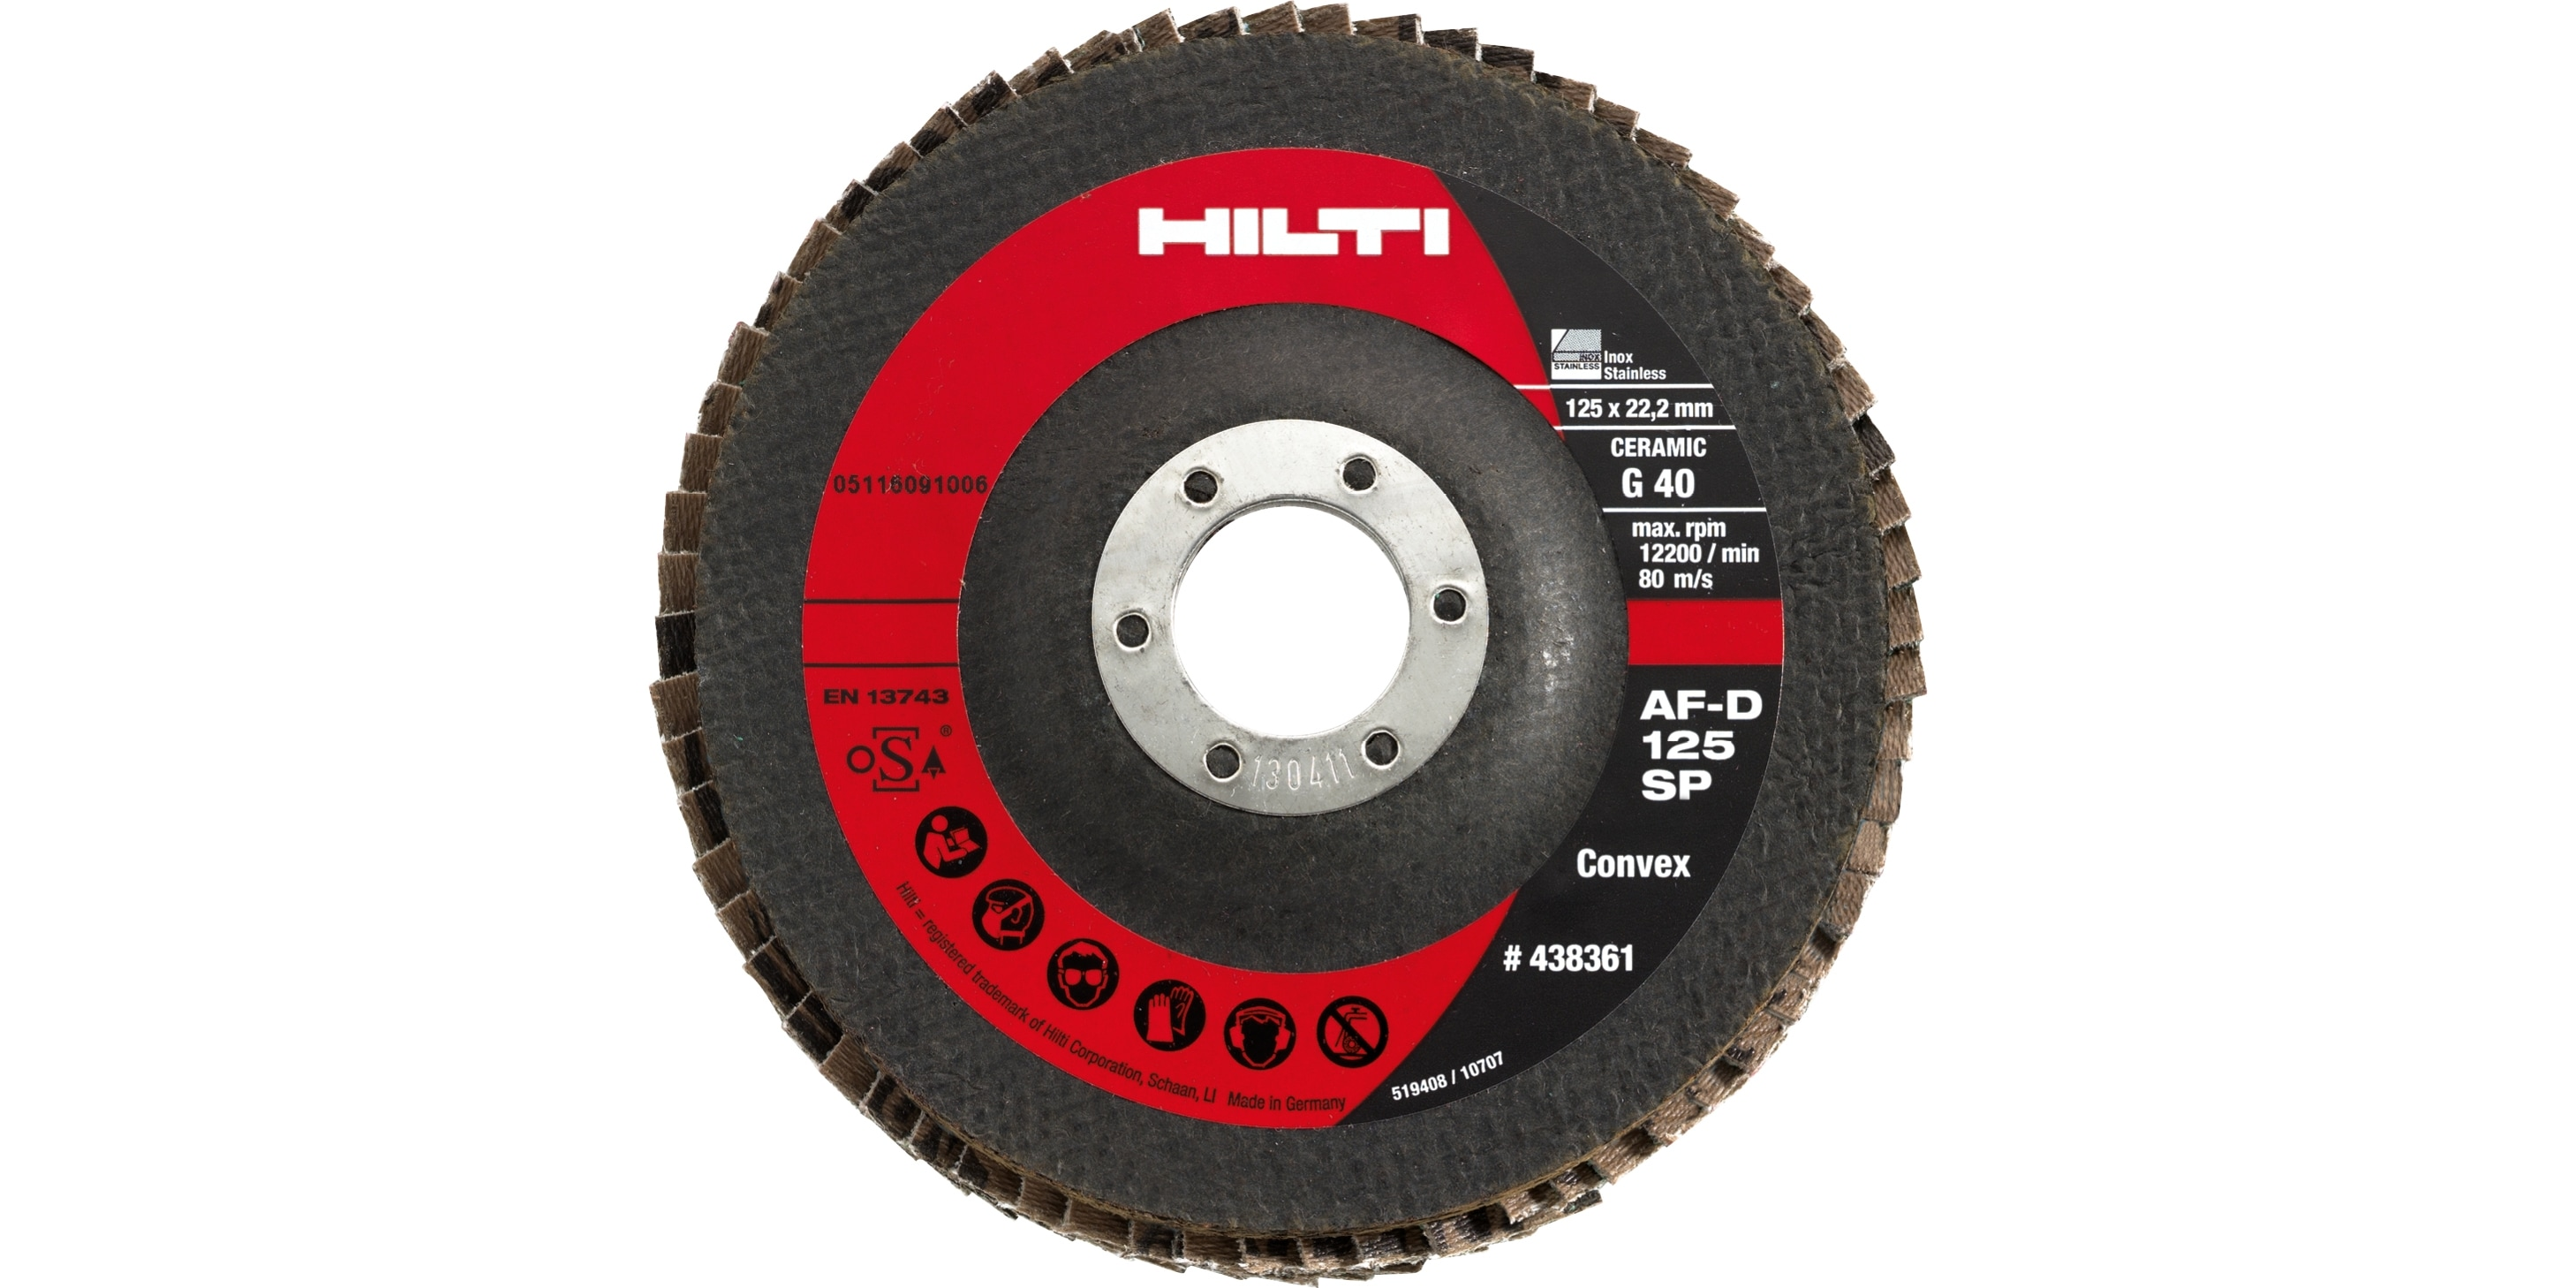 Ultimate flap disc with cooling coating for light grinding on stainless steel